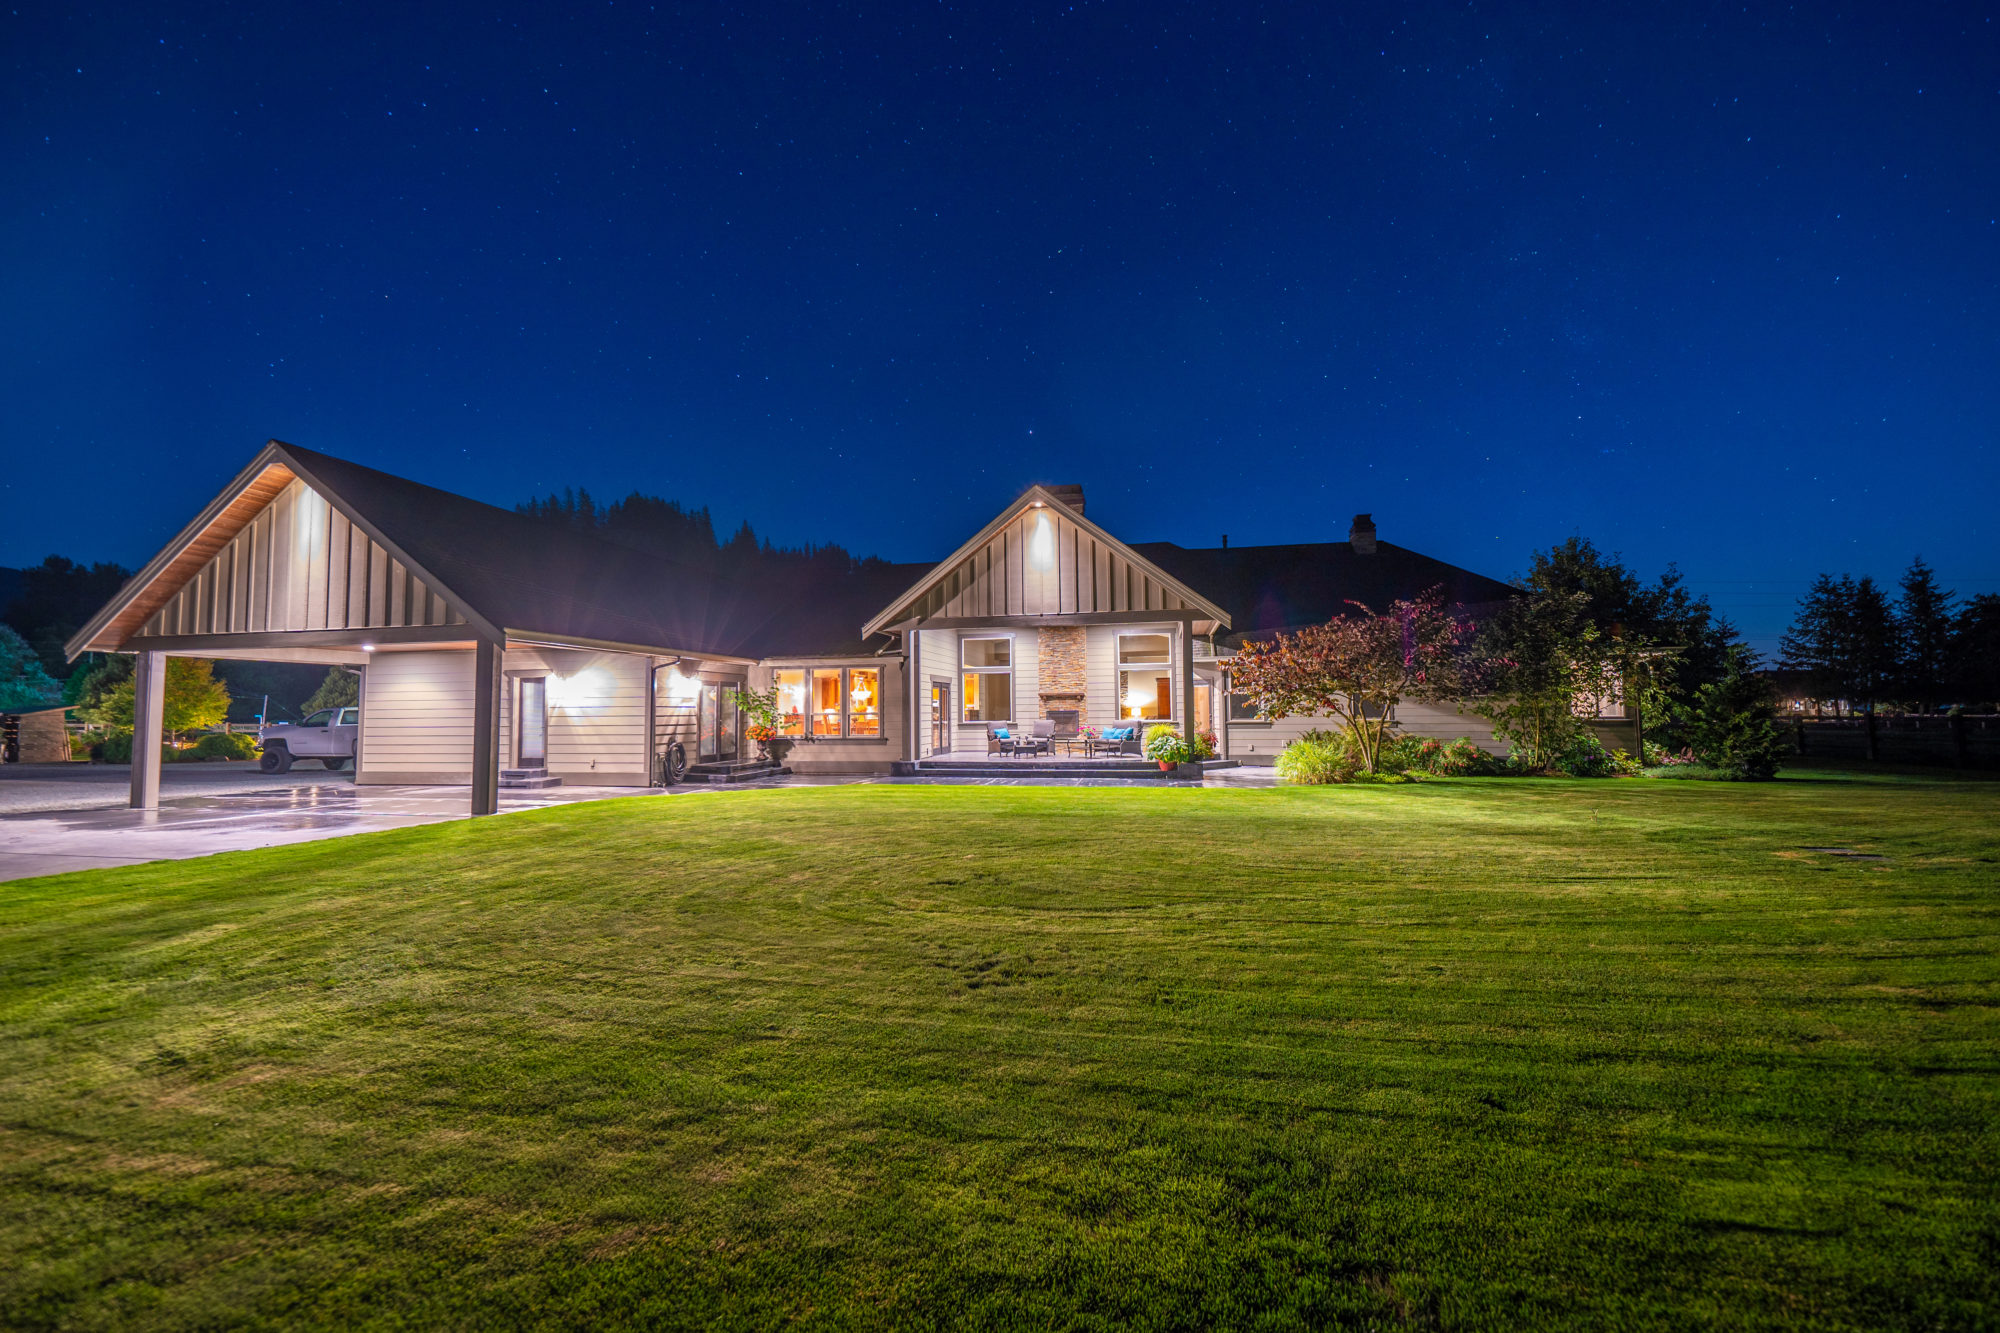 enumclaw night photogtraphy real estate listing hdr